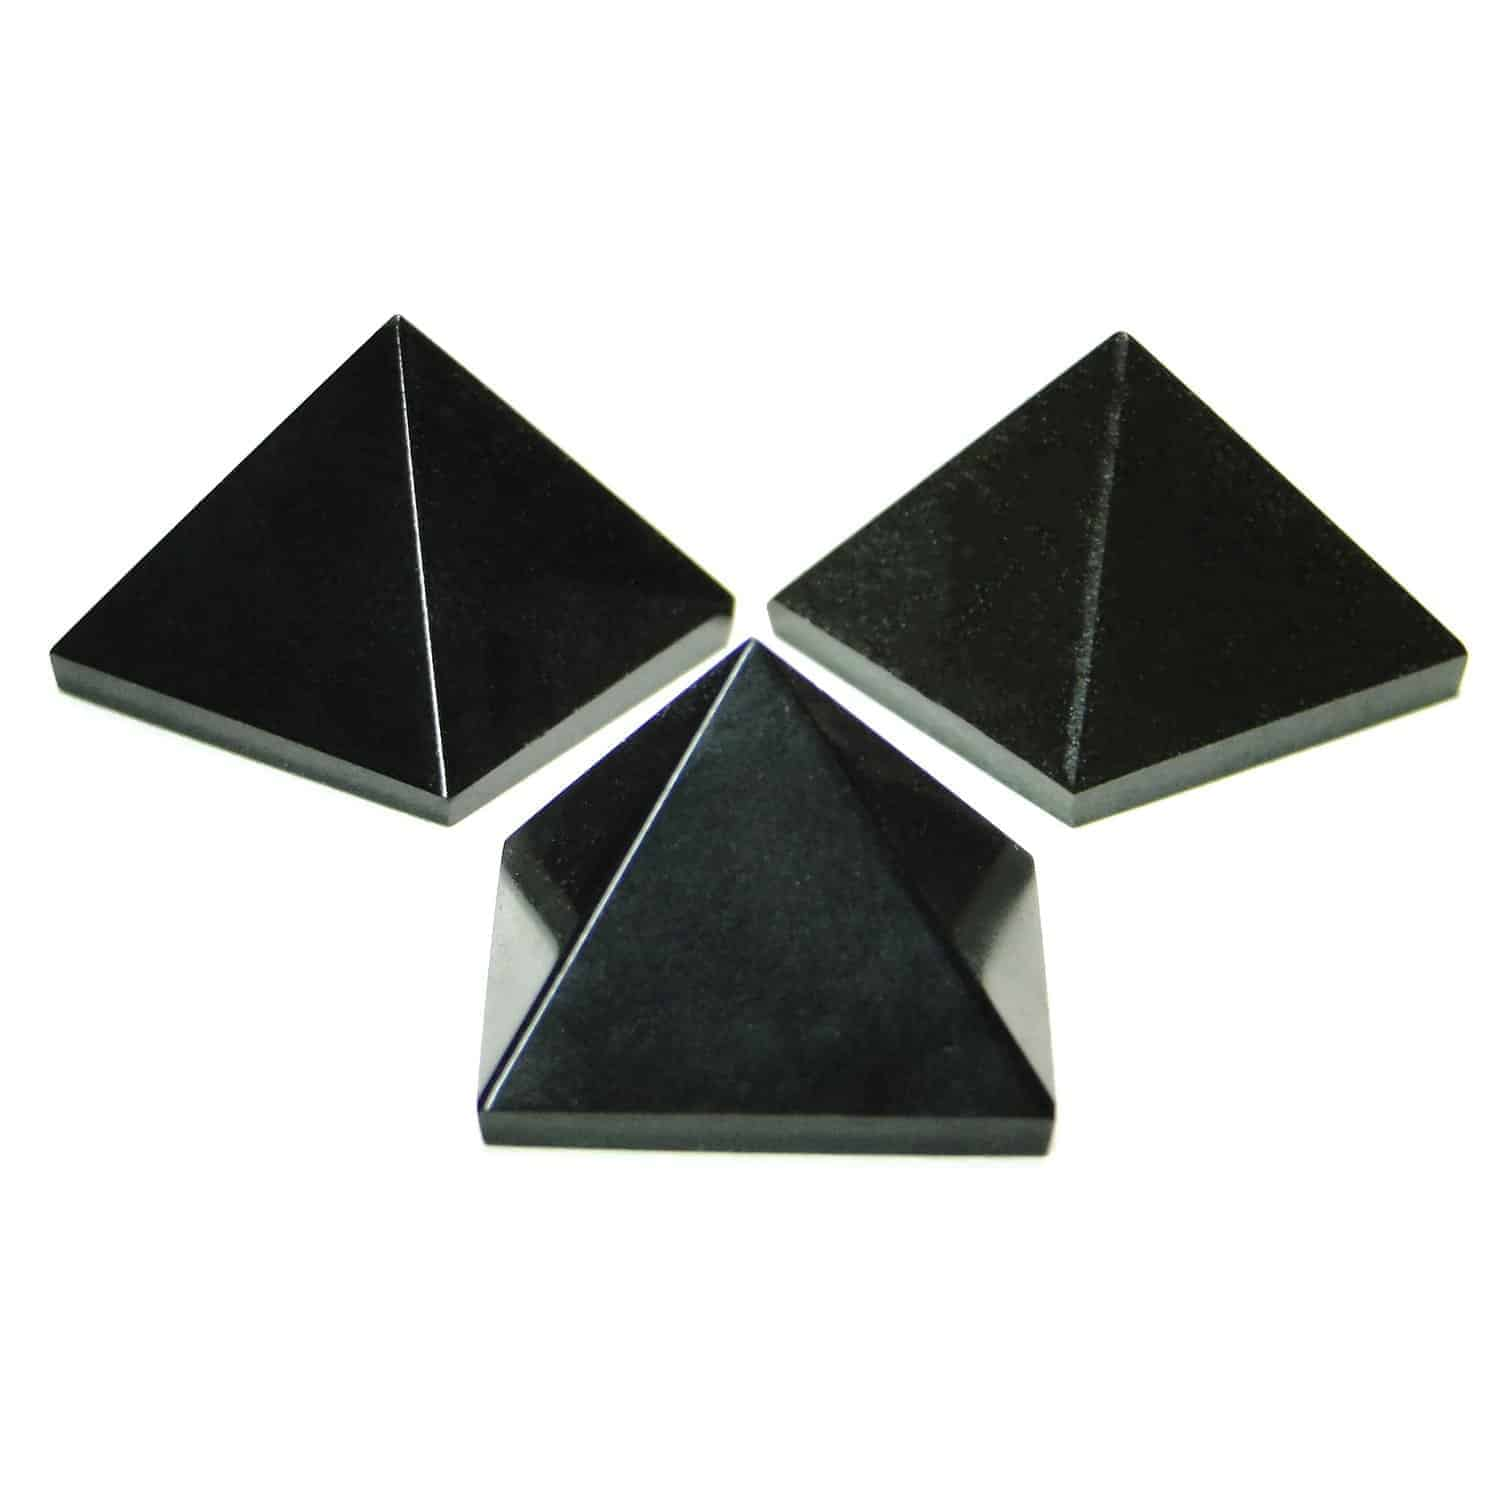 Black Tourmaline Pyramid Nature's Crest PY019 ₹ 349.00